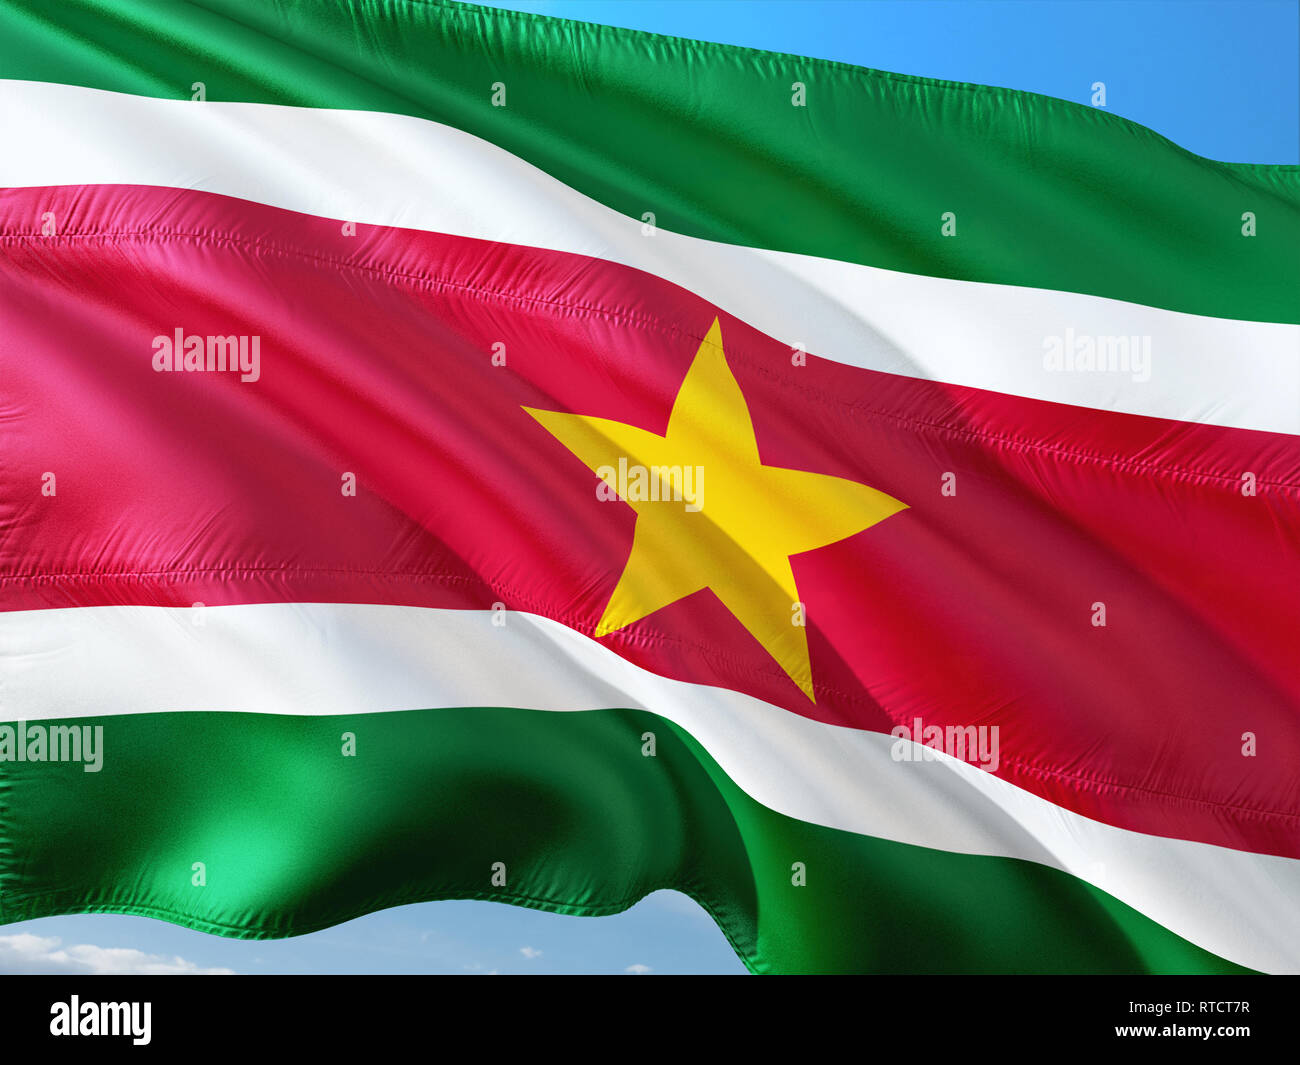 Flag of Suriname waving in the wind against deep blue sky. High quality fabric. - Stock Image